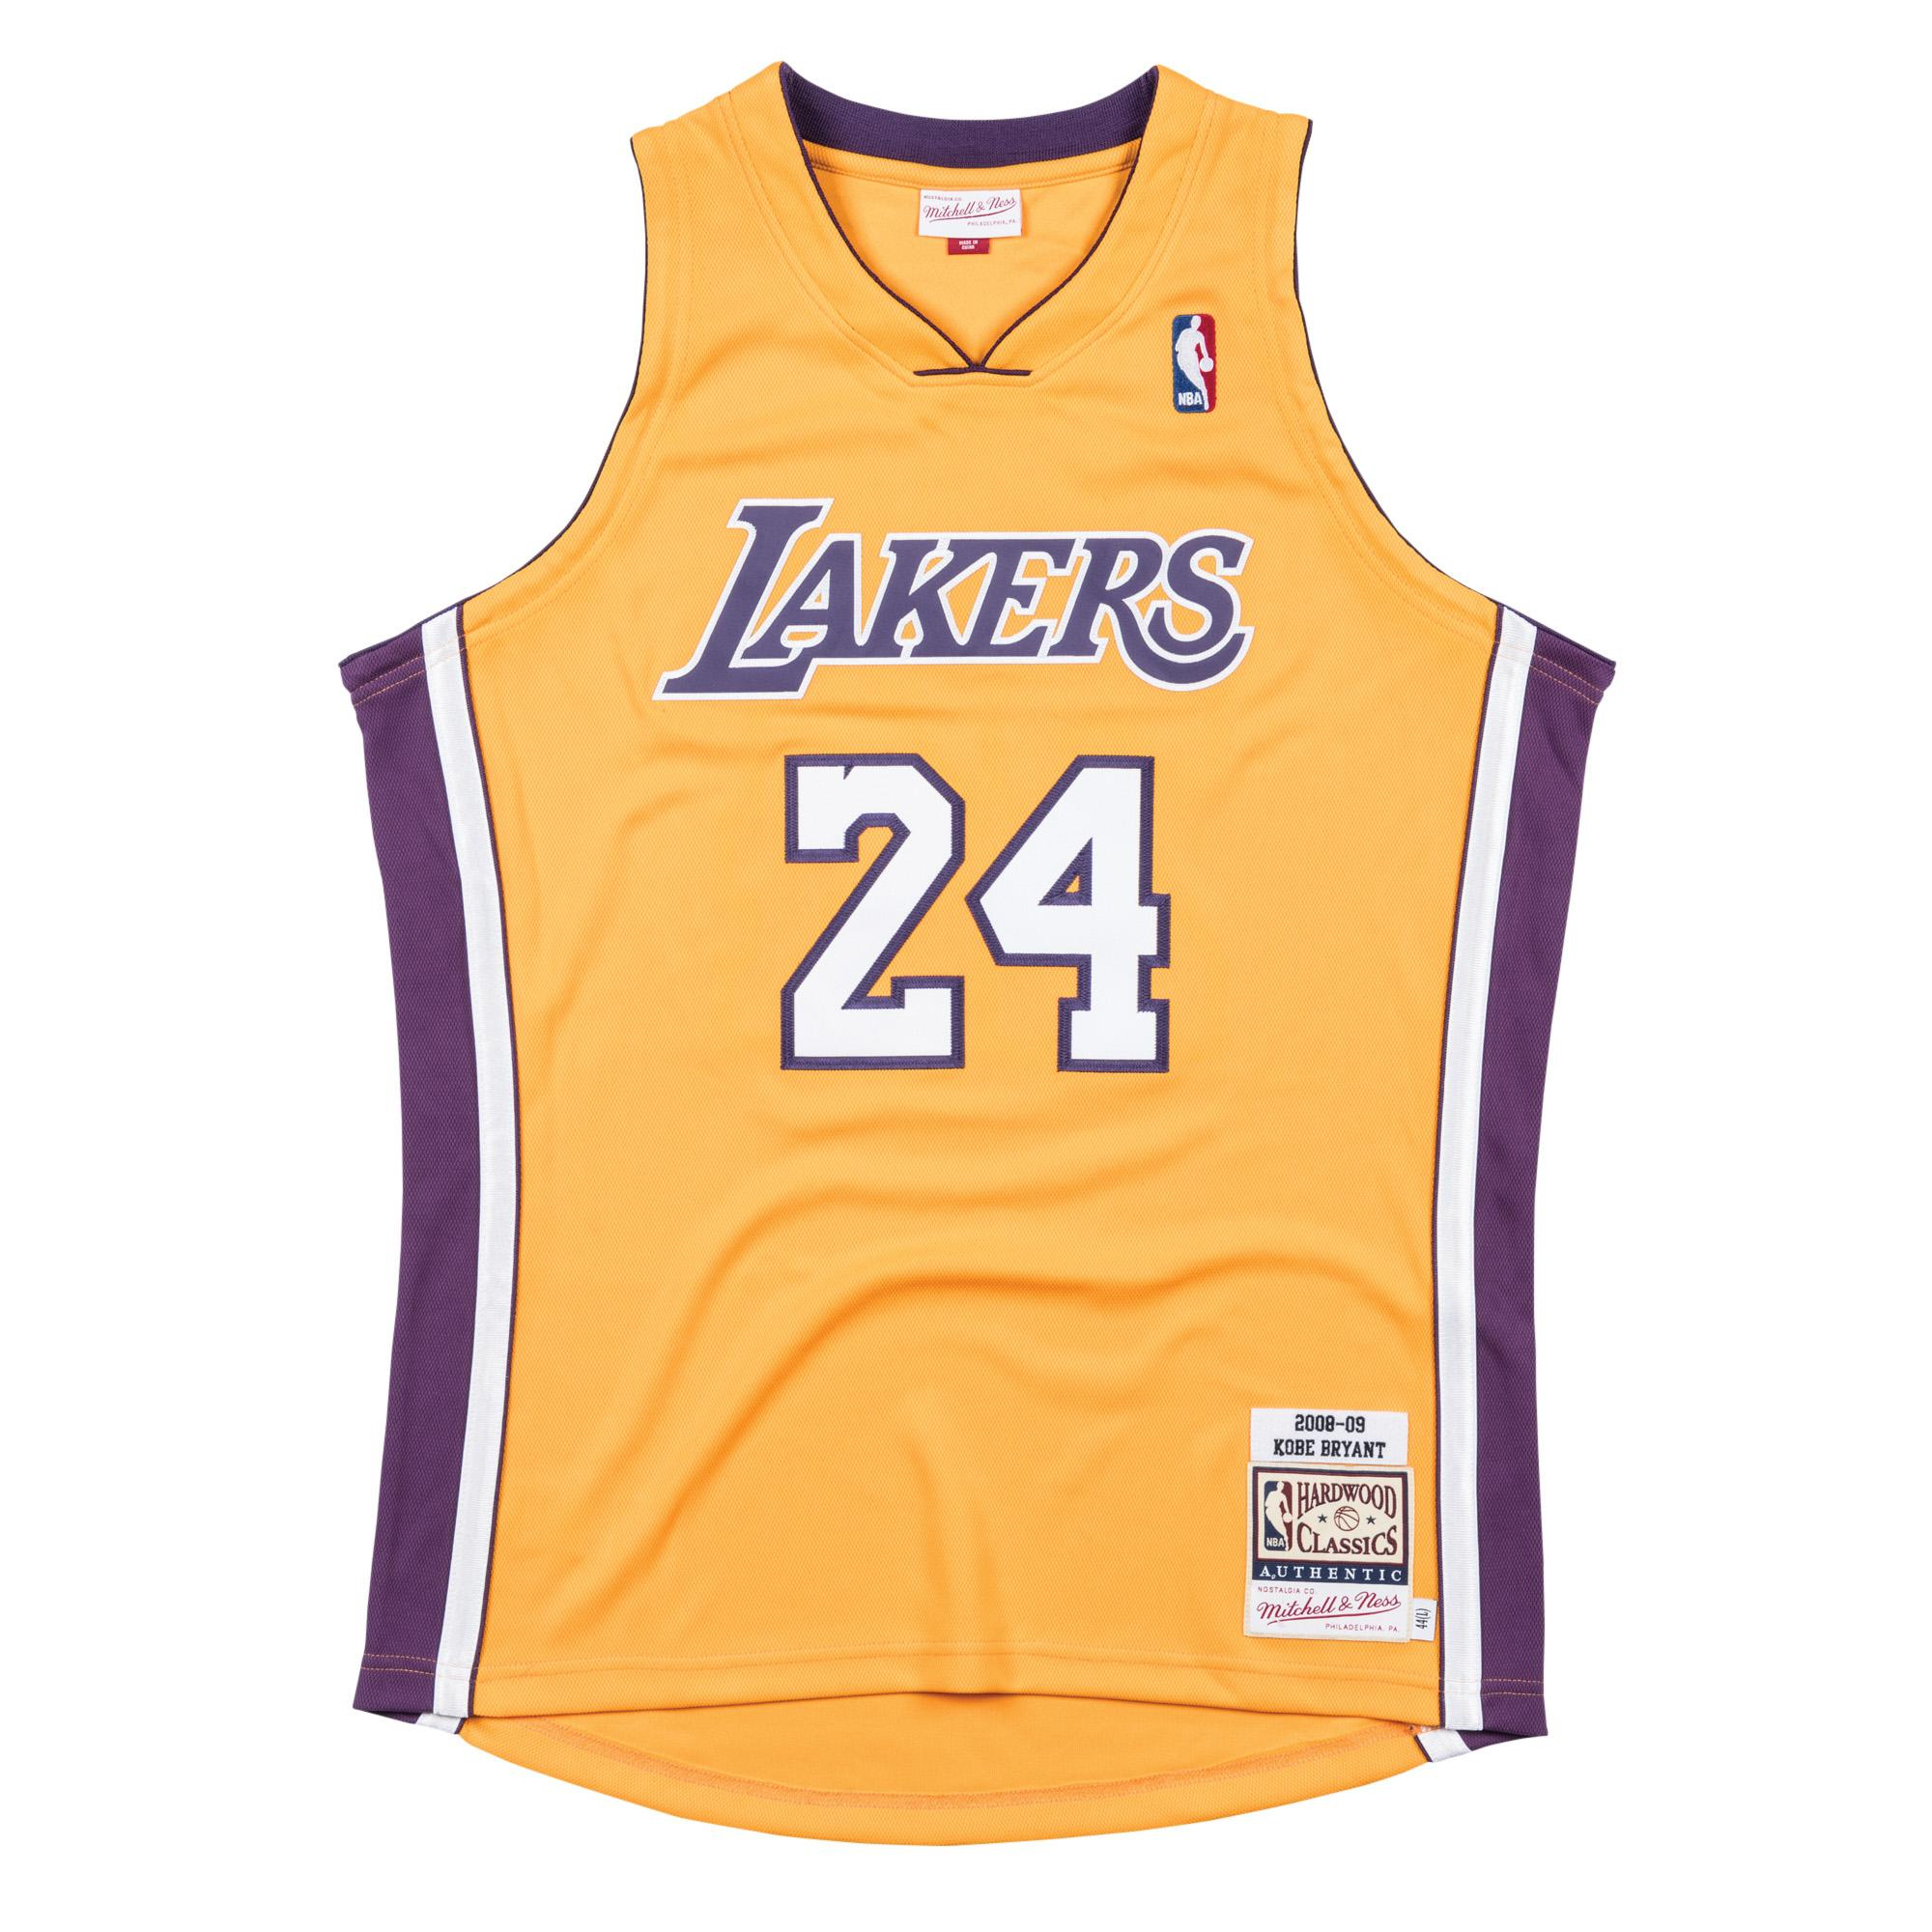 promo code 079bb 6e1a6 Mitchell & Ness | Kobe Bryant 2008-09 Home Authentic Jersey